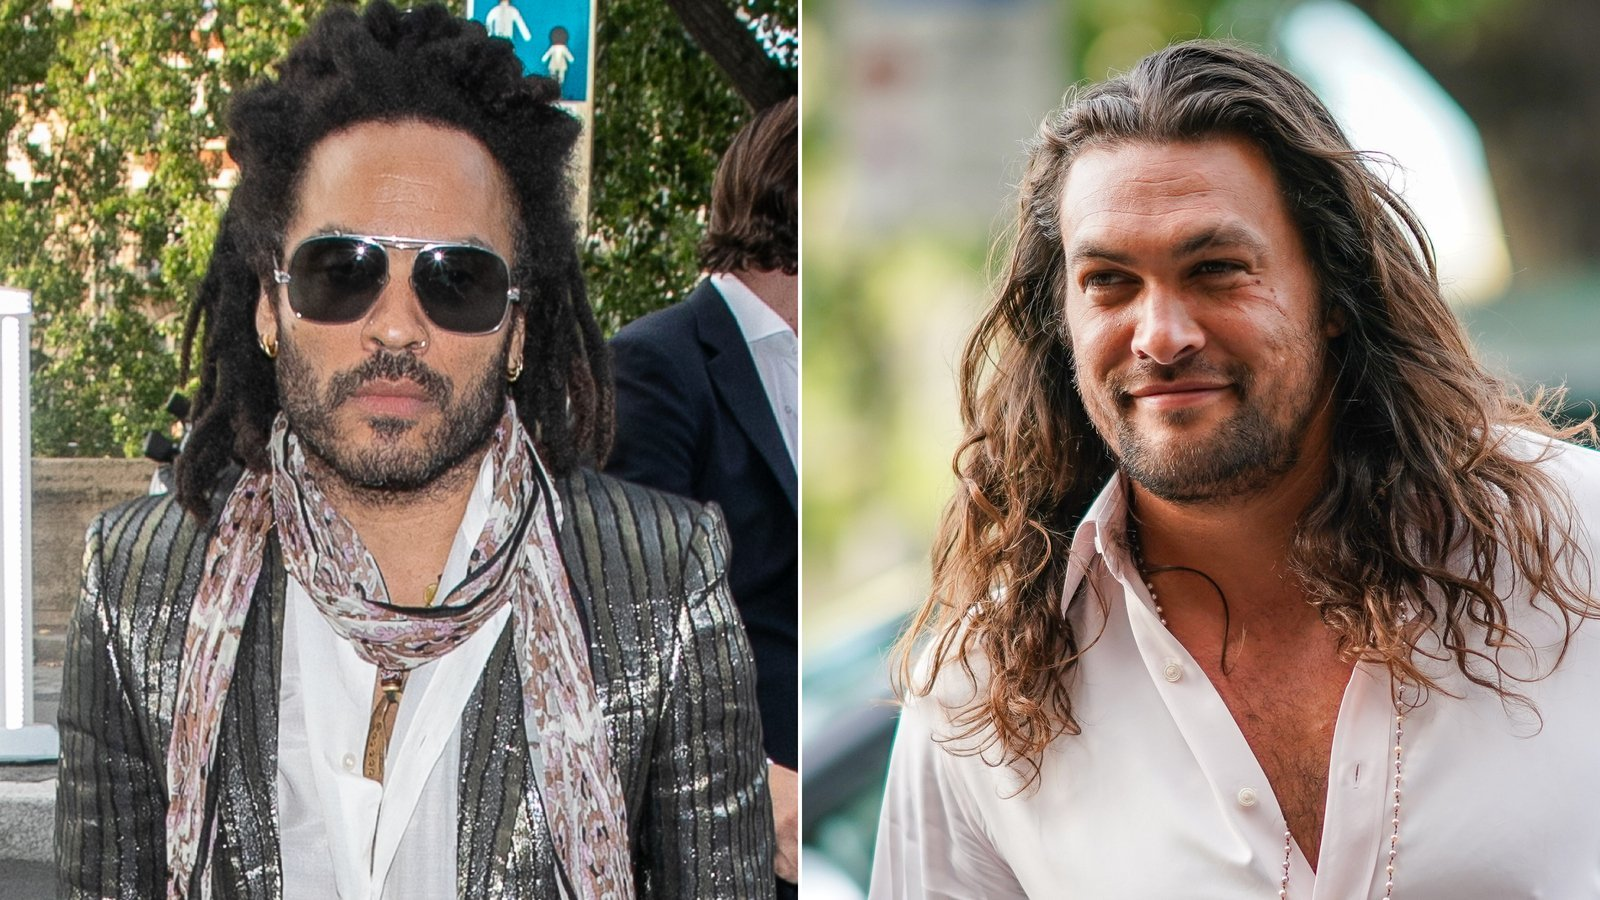 Lenny Kravitz loves Jason Momoa too